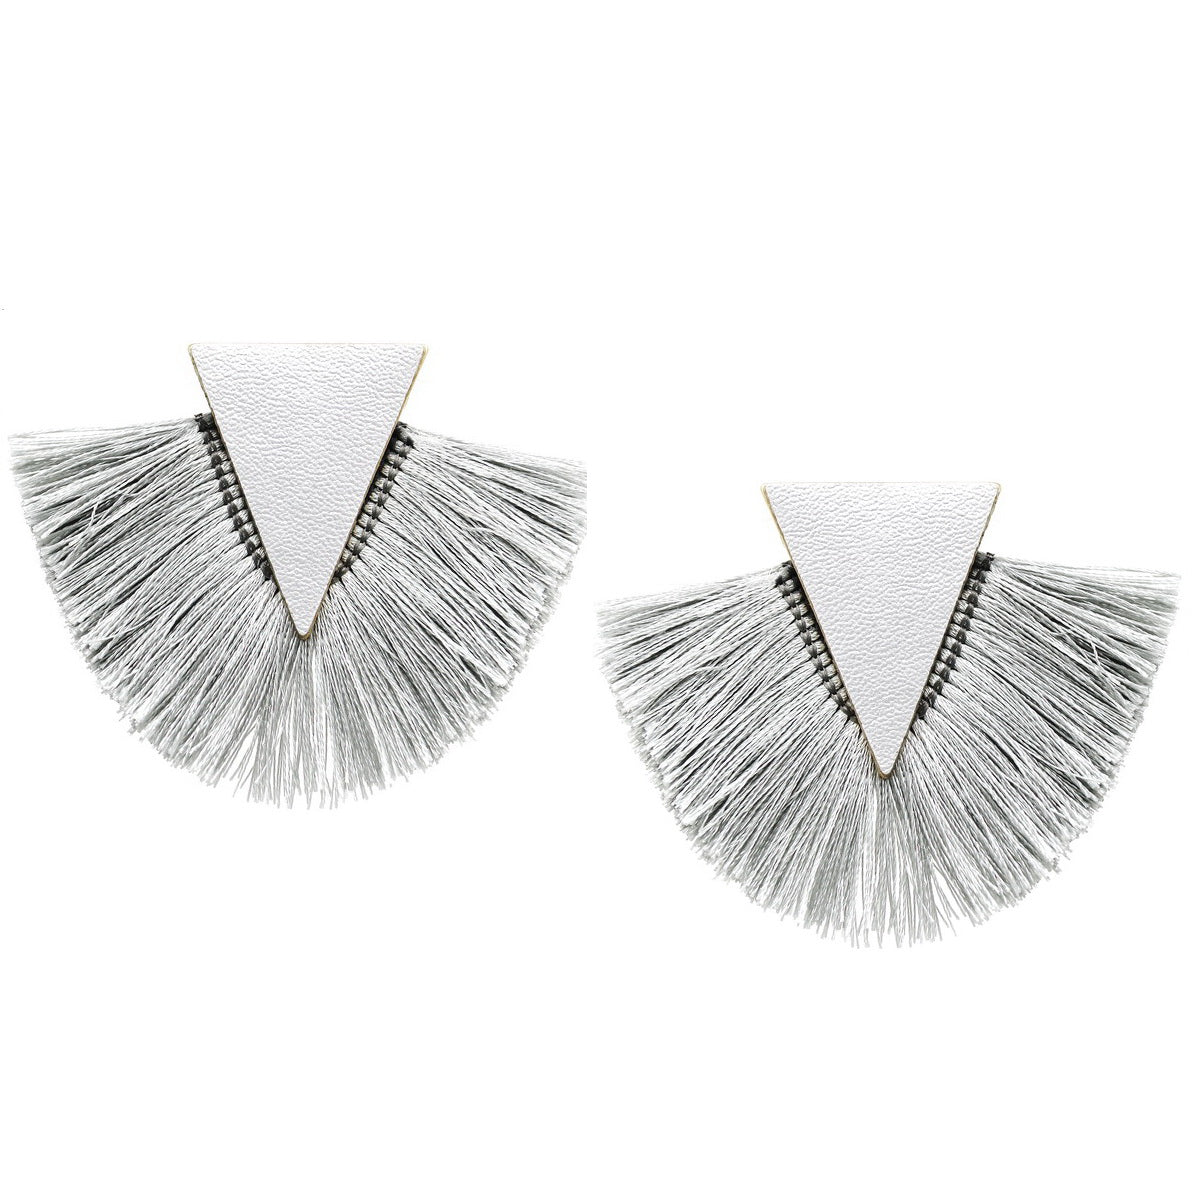 Fringed Leather Triangle Earrings